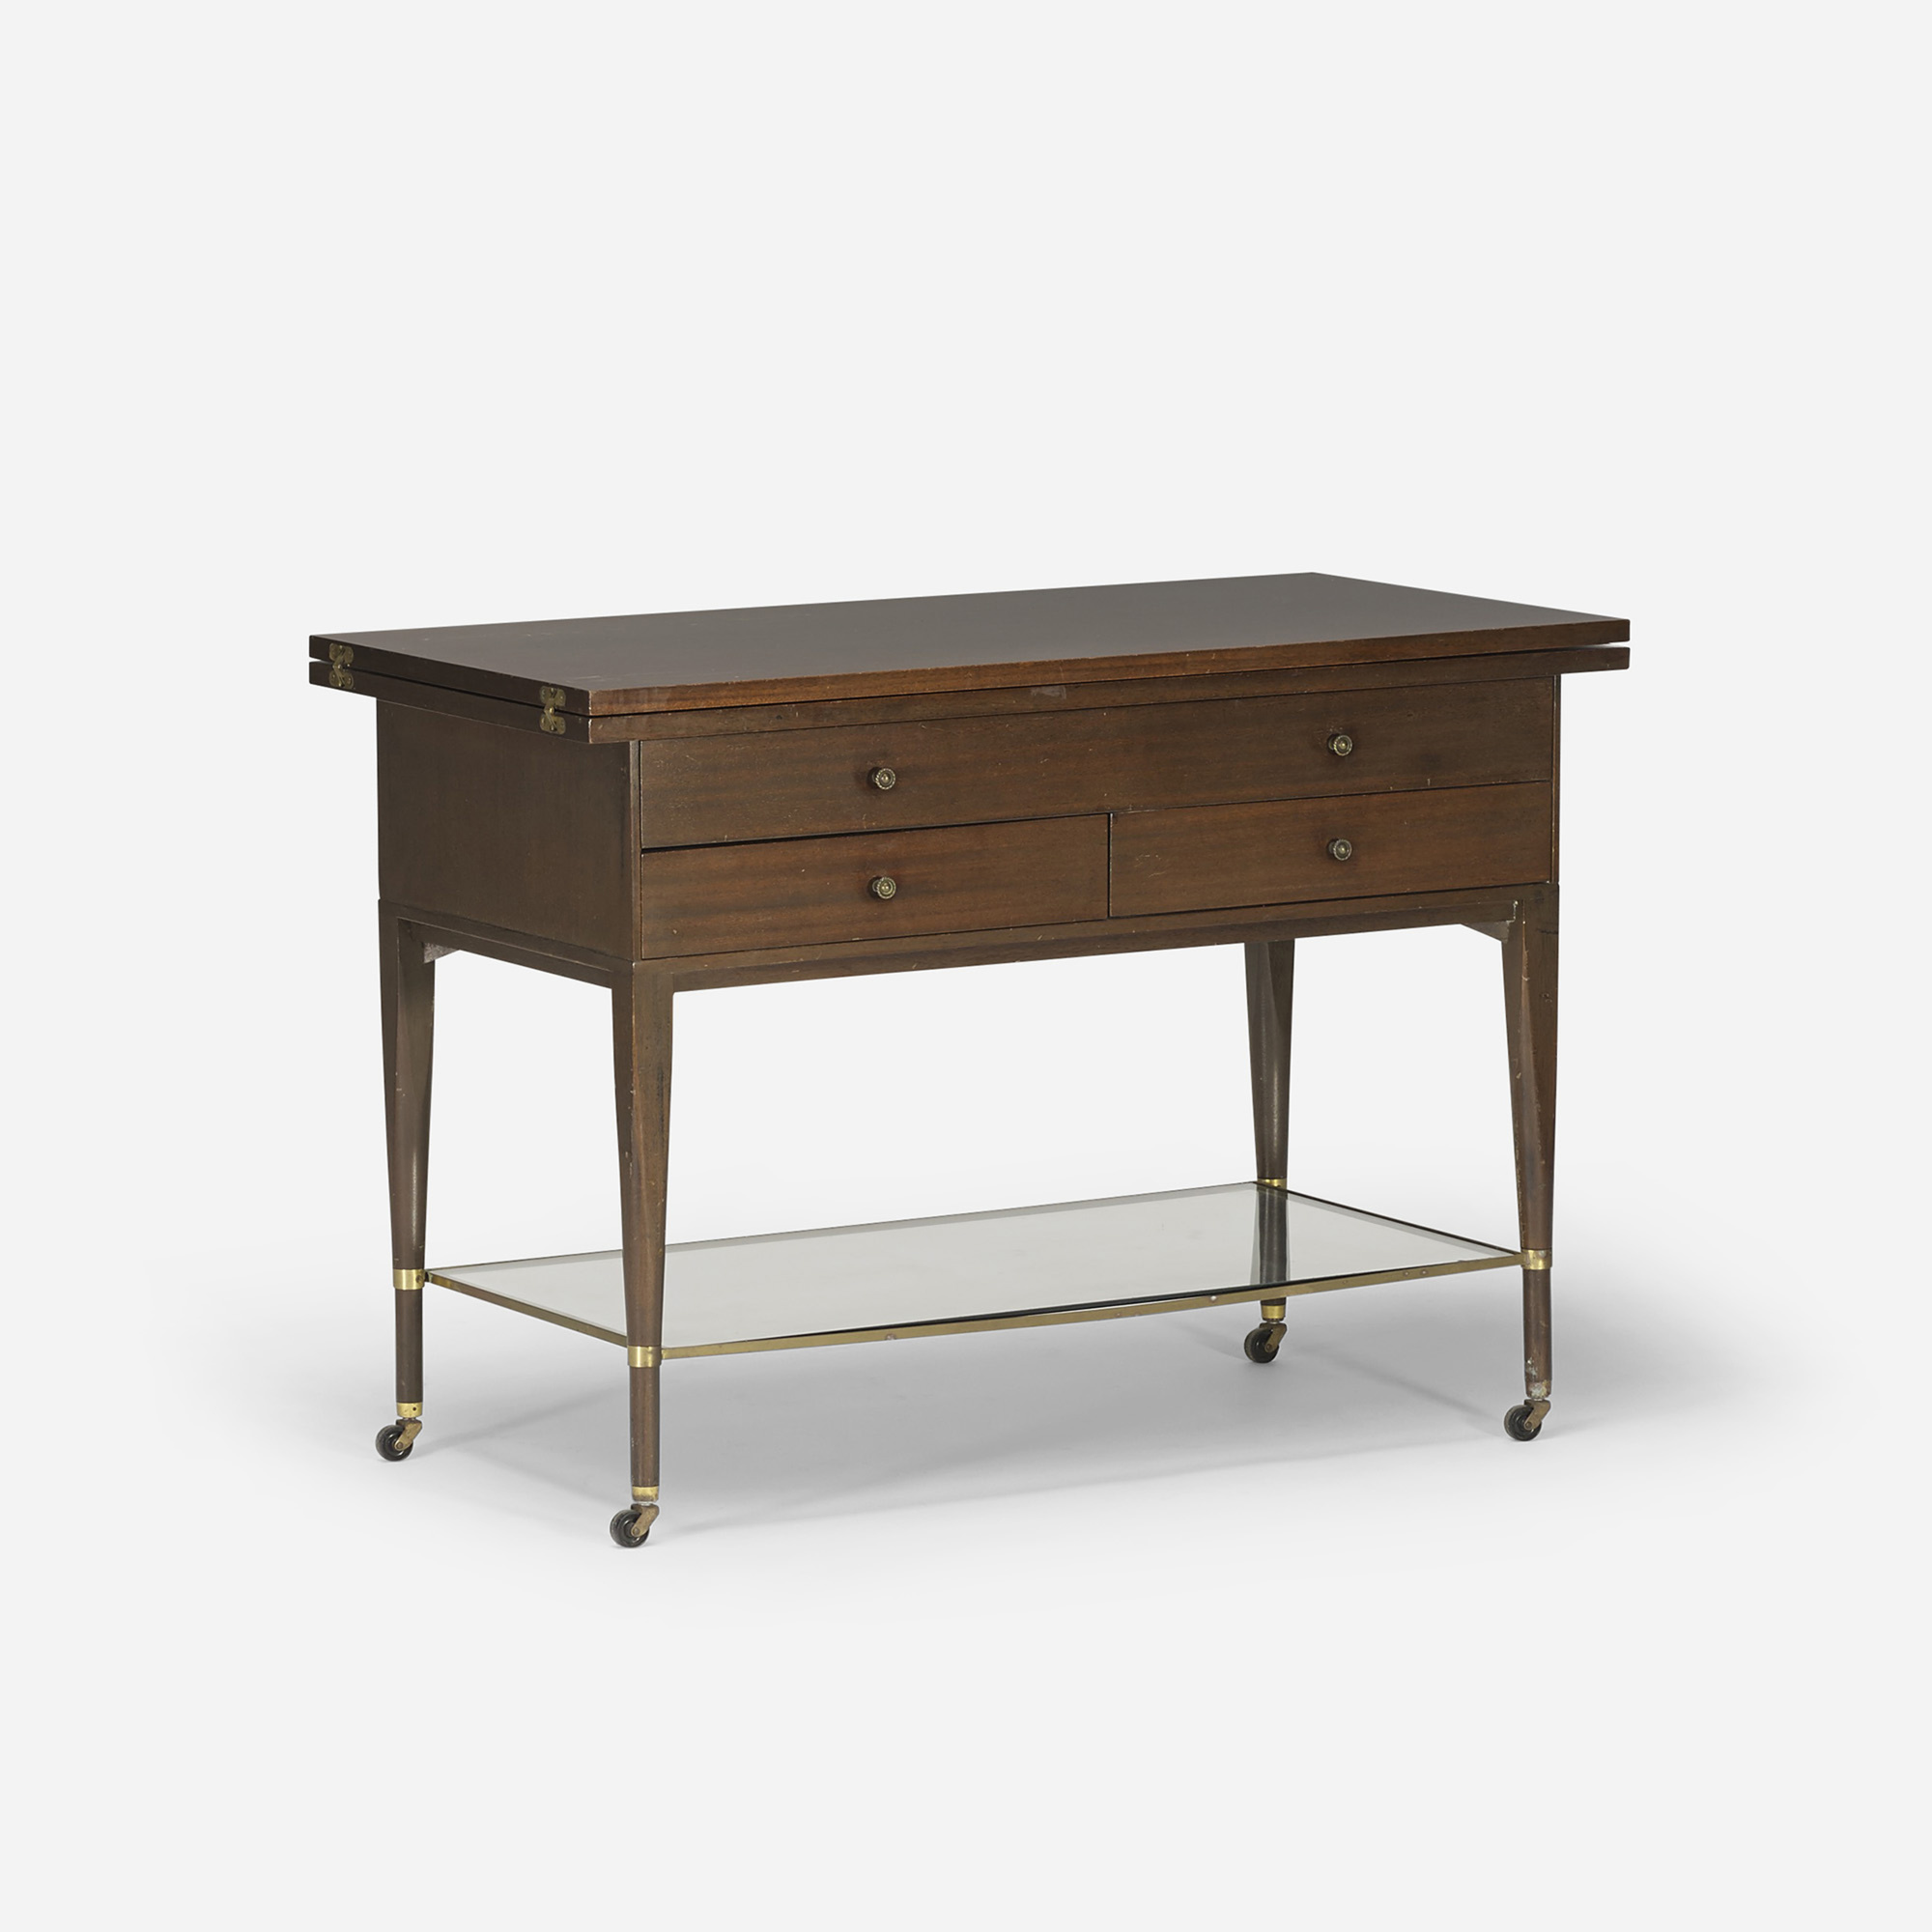 555: Paul McCobb / The Irwin Collection bar cart (3 of 4)